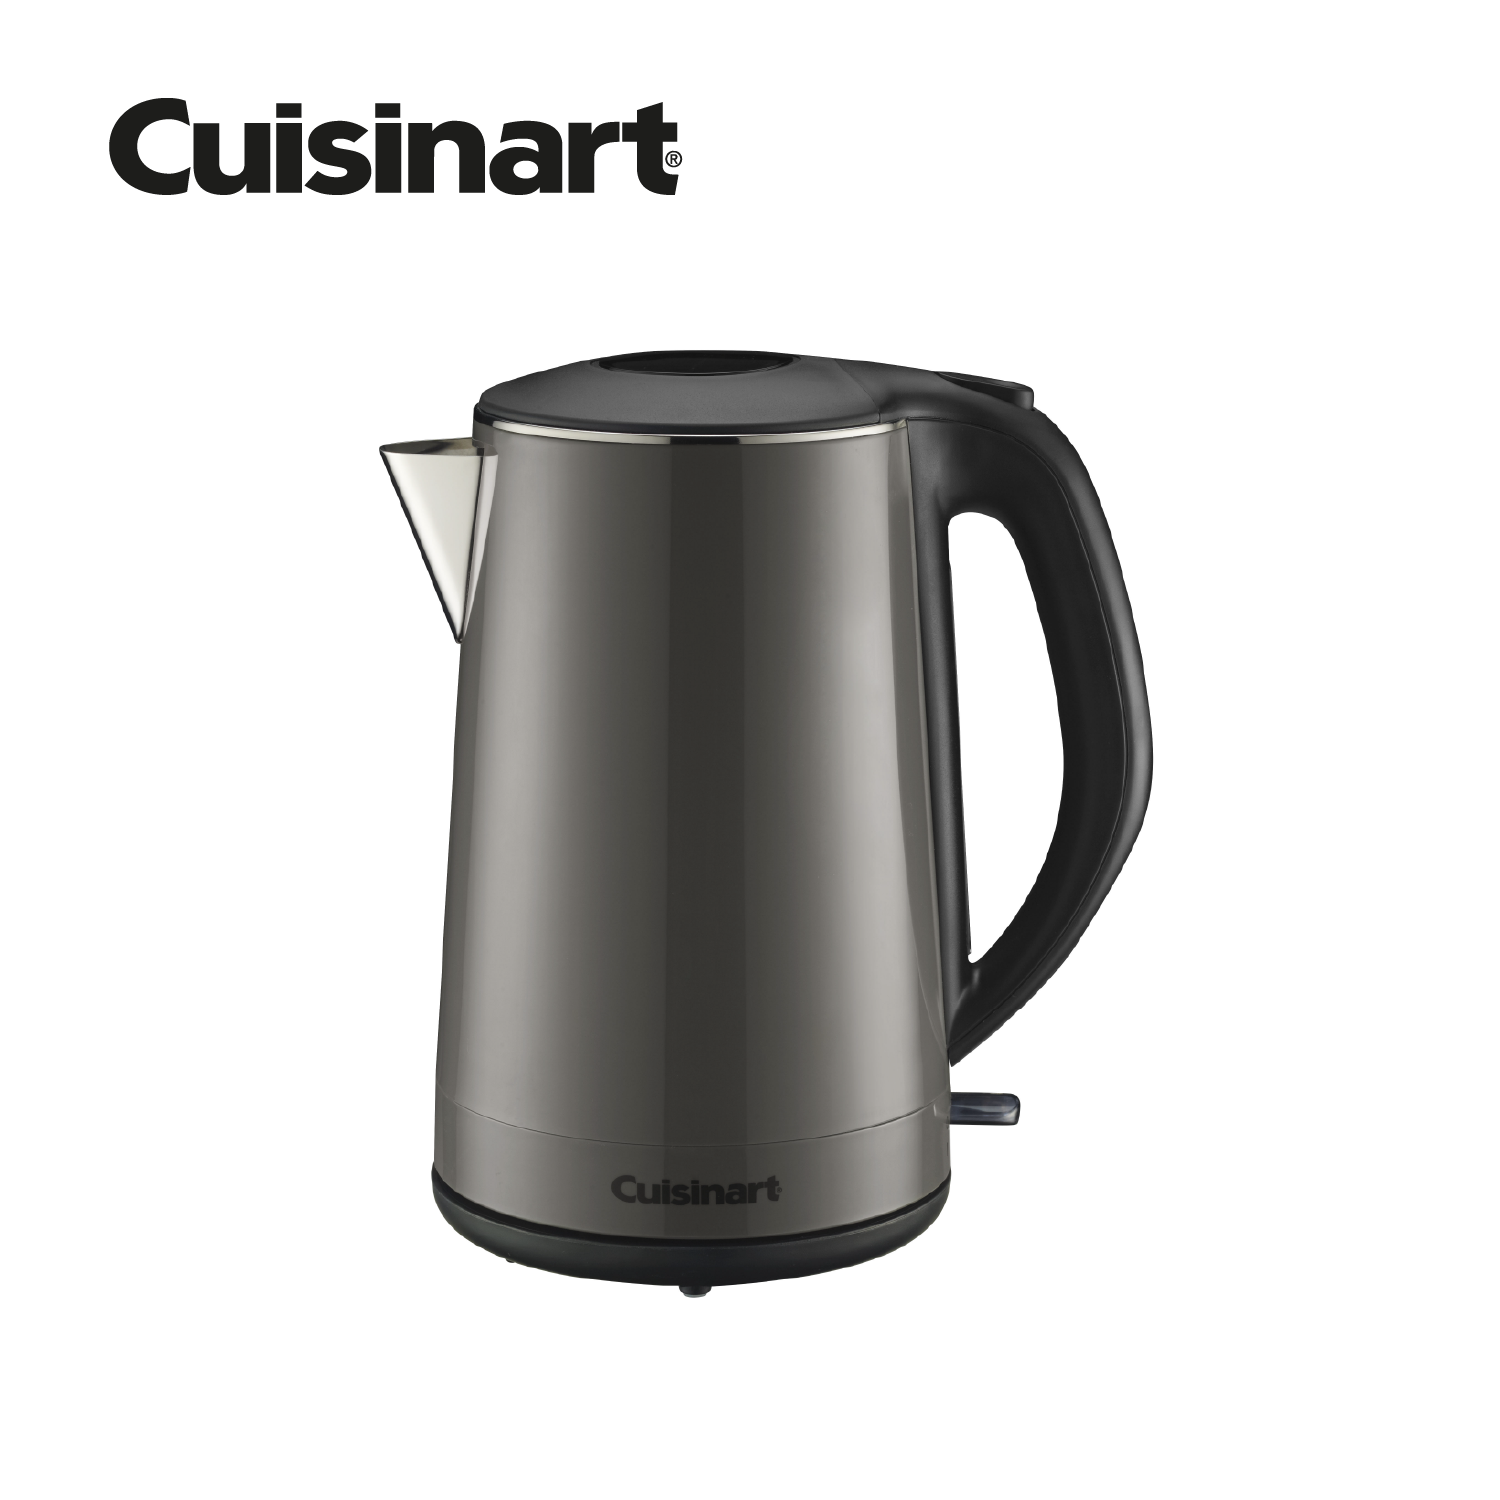 Cuisinart Cordless Electric Kettle (Double Wall)